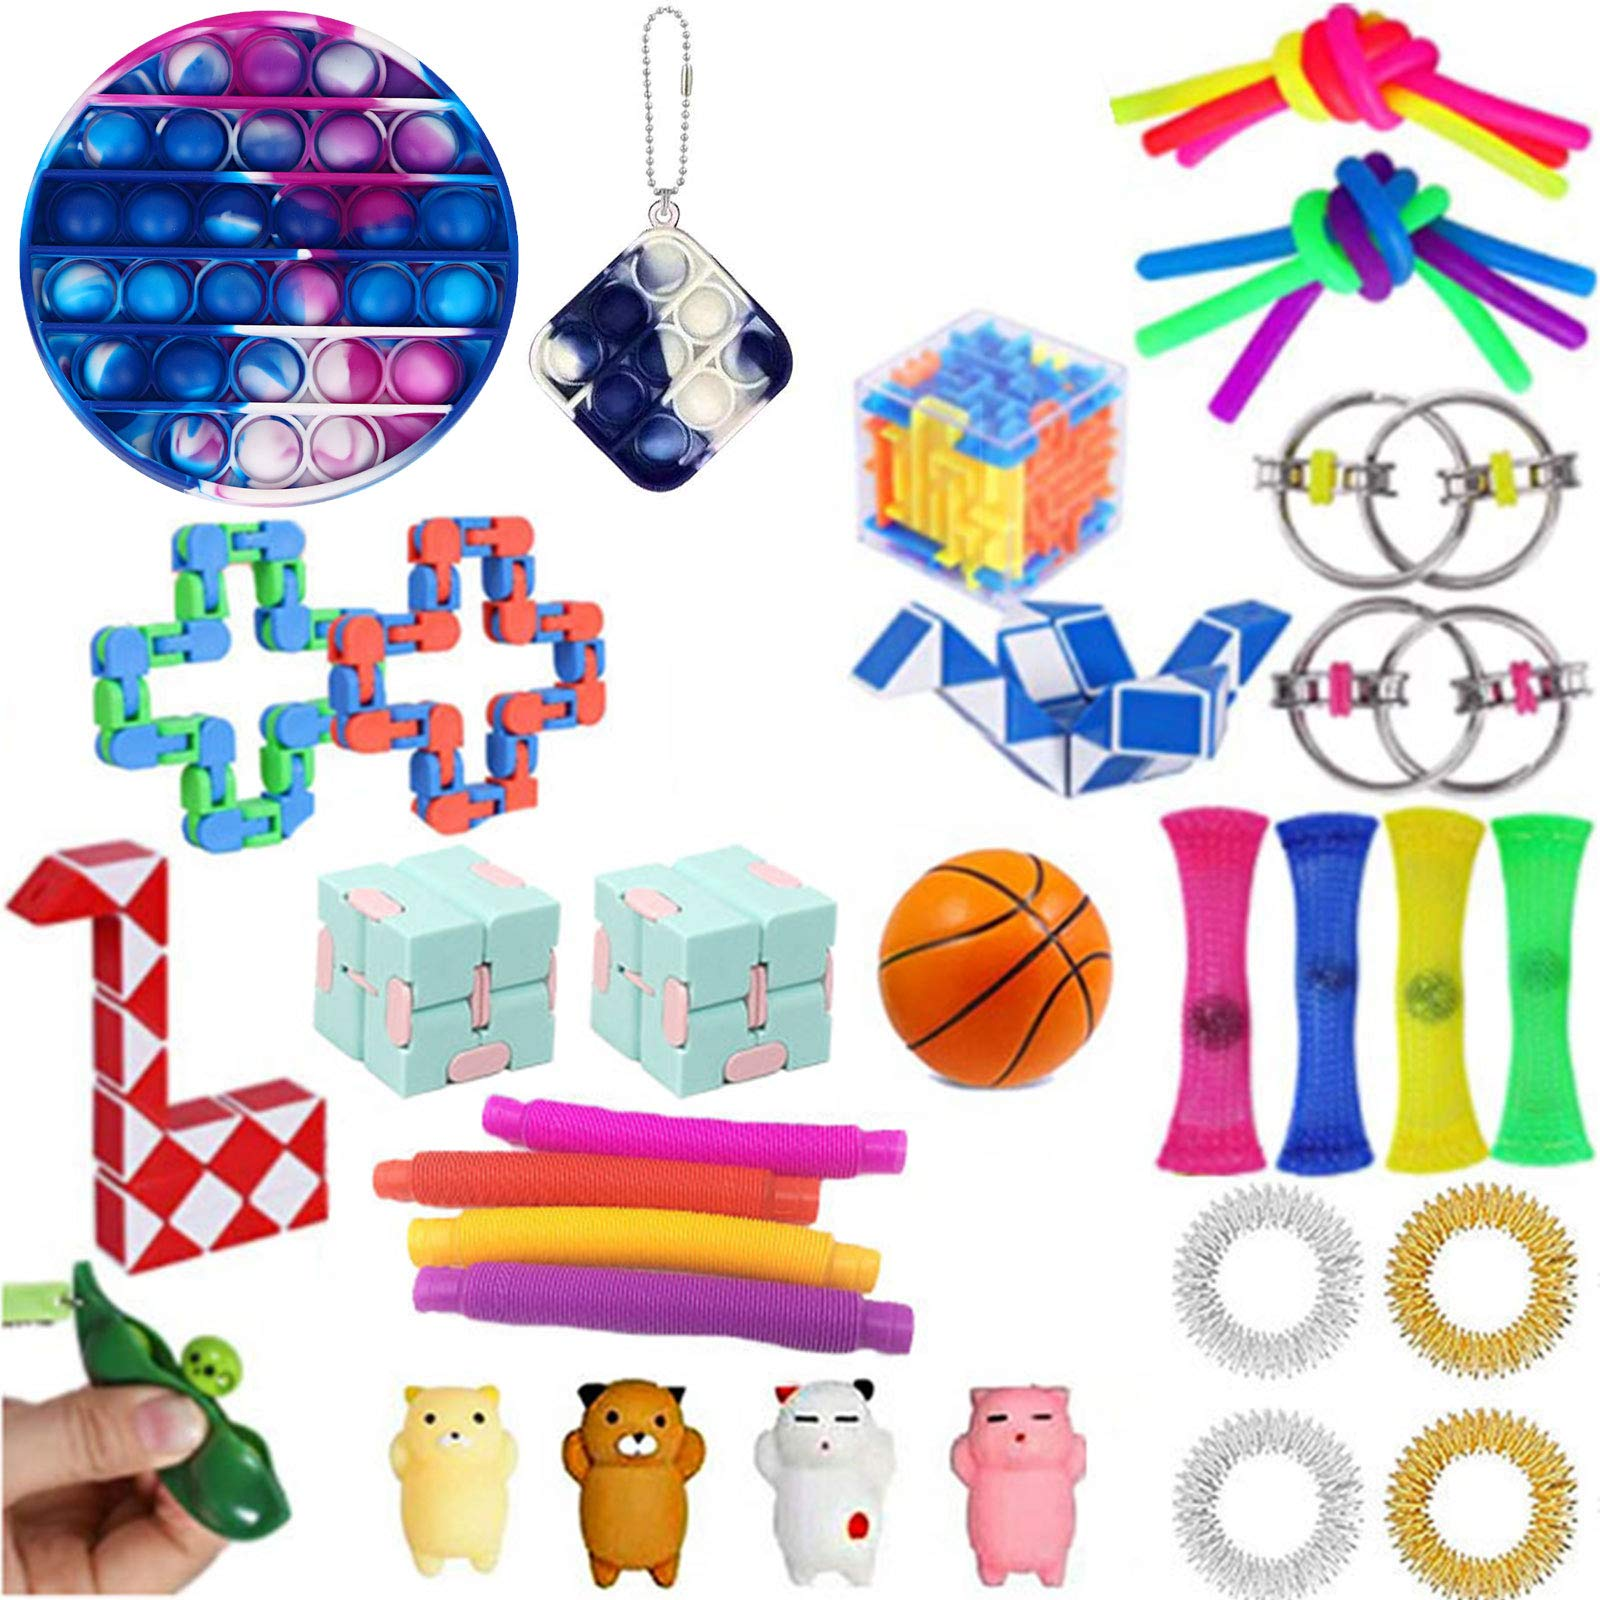 Komoo Fidget Toy 31Pcs Fidgets Box Cheap, Simple Dimple Fidget Toys Packs, Decompression Keychain Toy, Push Pop Bubble Sensory Toy for Kids and Adults (D)